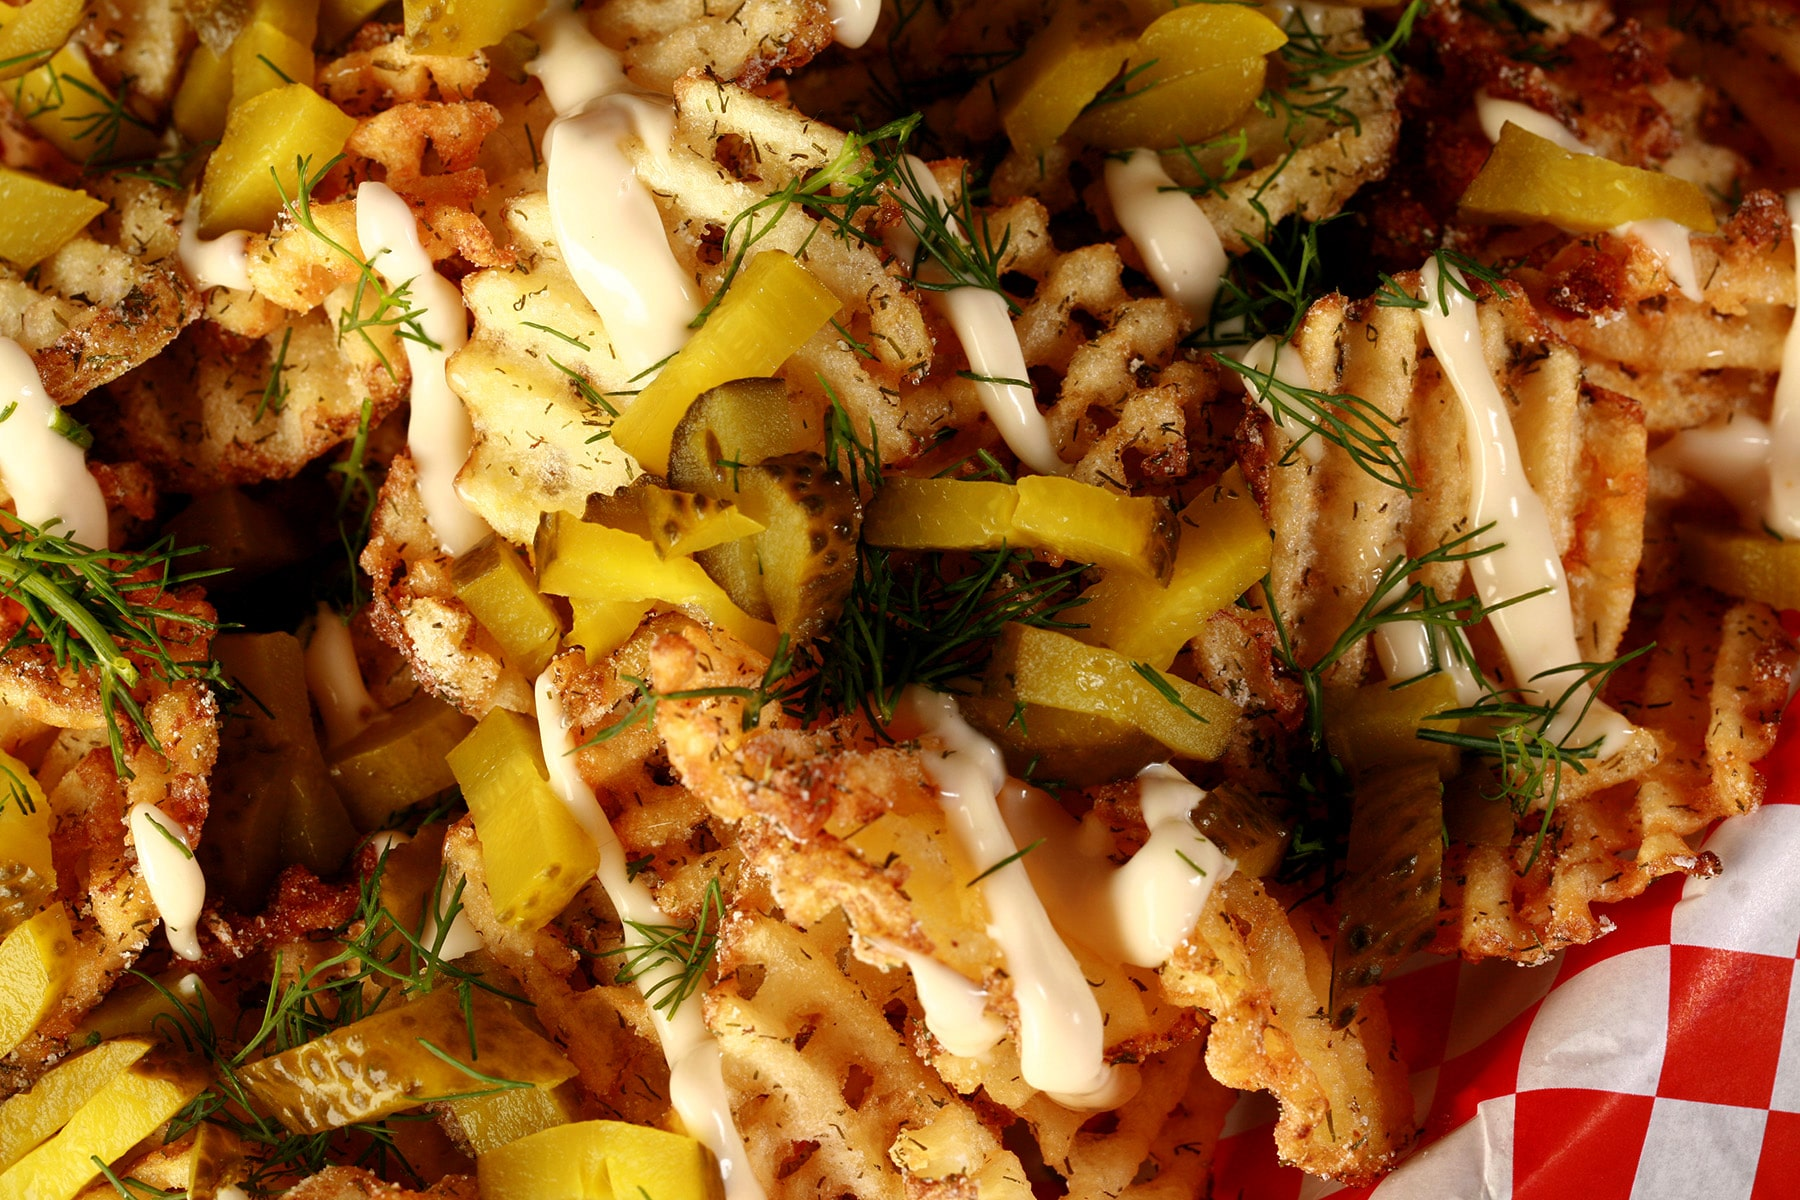 Waffle cut fries, in a white basket lined with red and white checkered paper. The fries are drizzled with roasted garlic aioi and topped with chopped dill and chopped pickles.